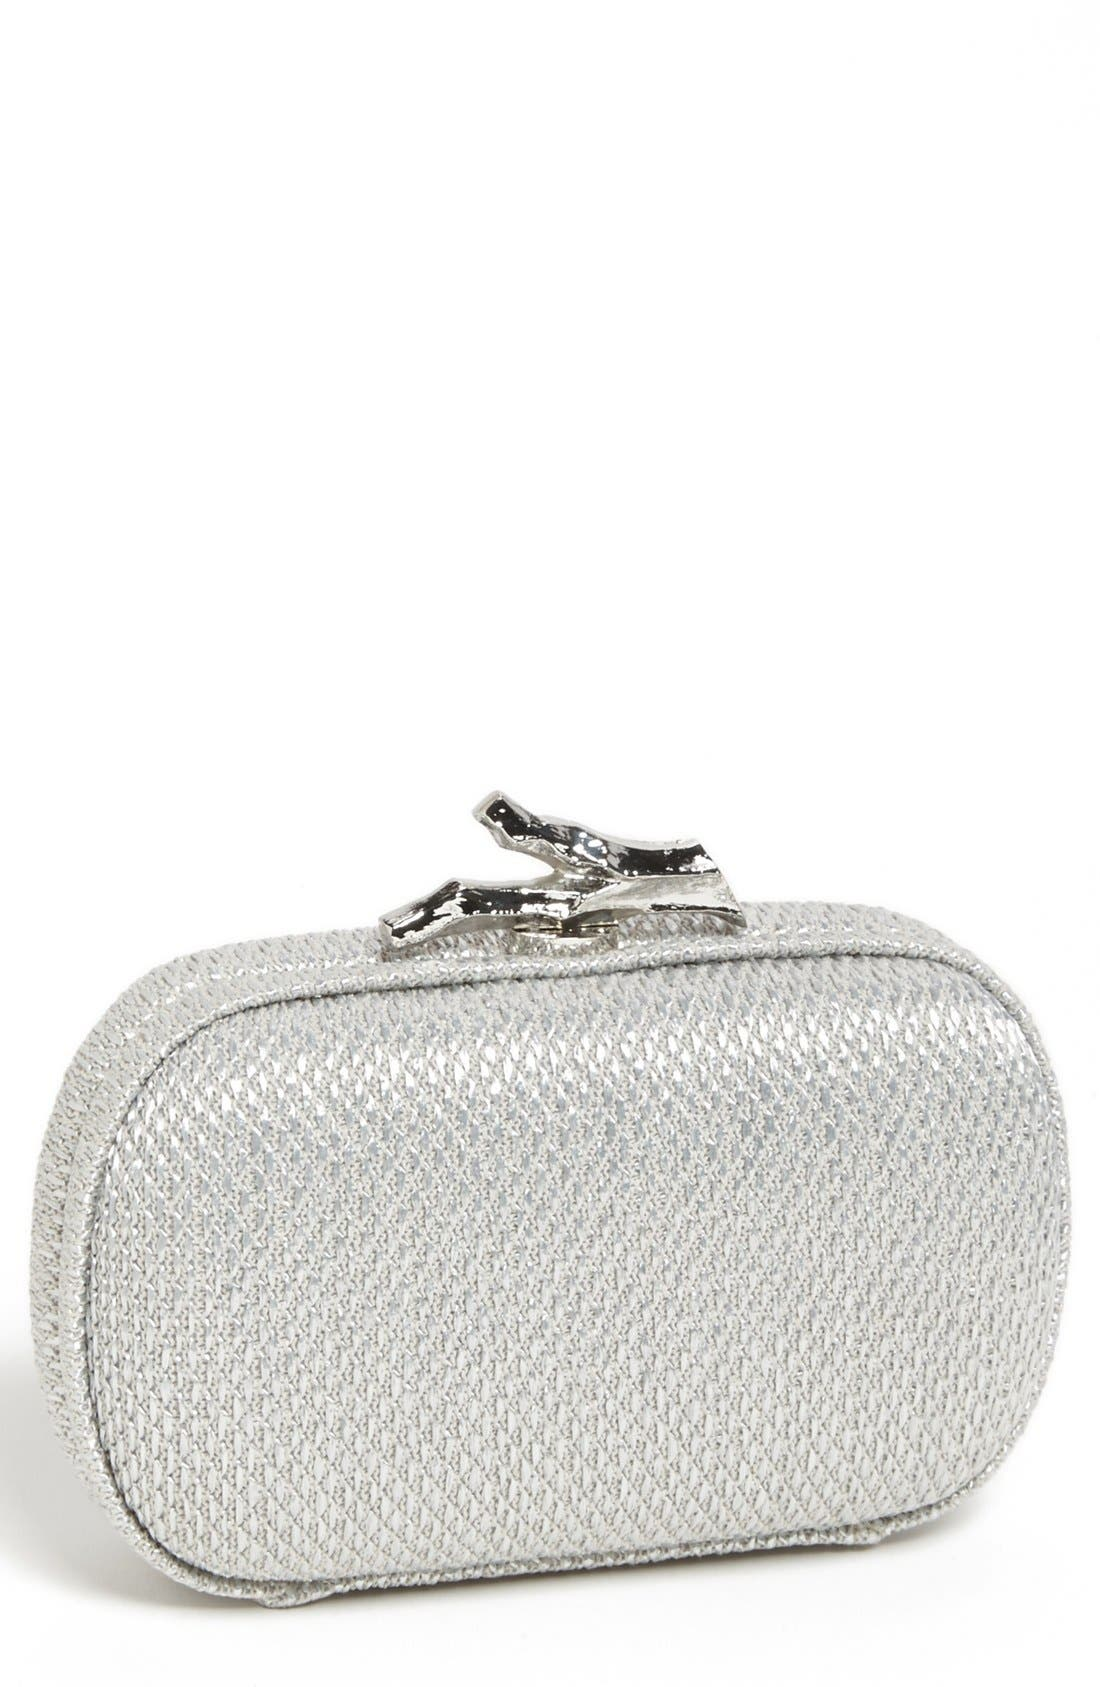 Alternate Image 1 Selected - Diane von Furstenberg 'Lytton' Clutch